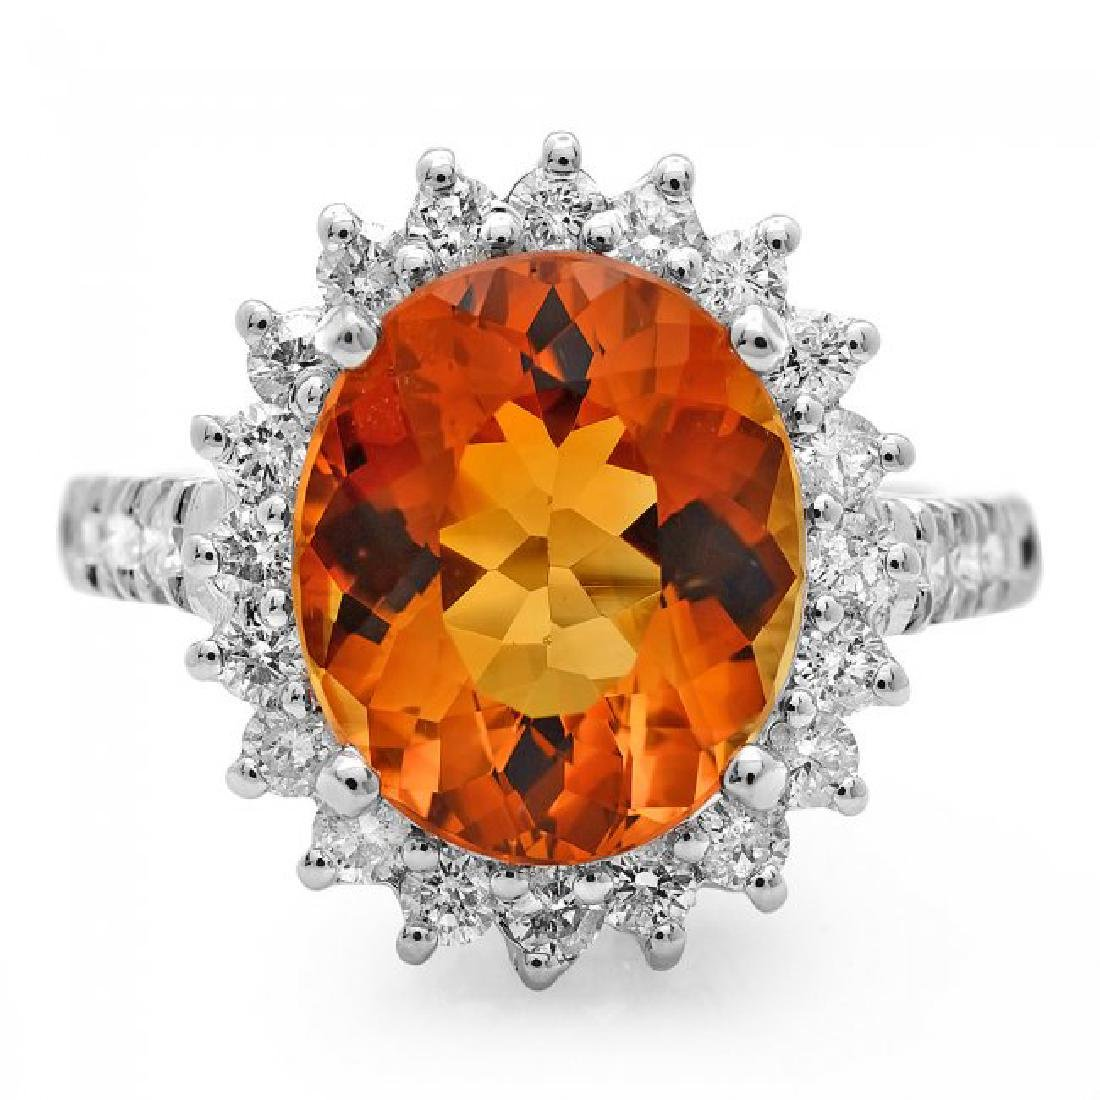 14k White Gold 5.00ct Citrine 1.05ct Diamond Ring - 2